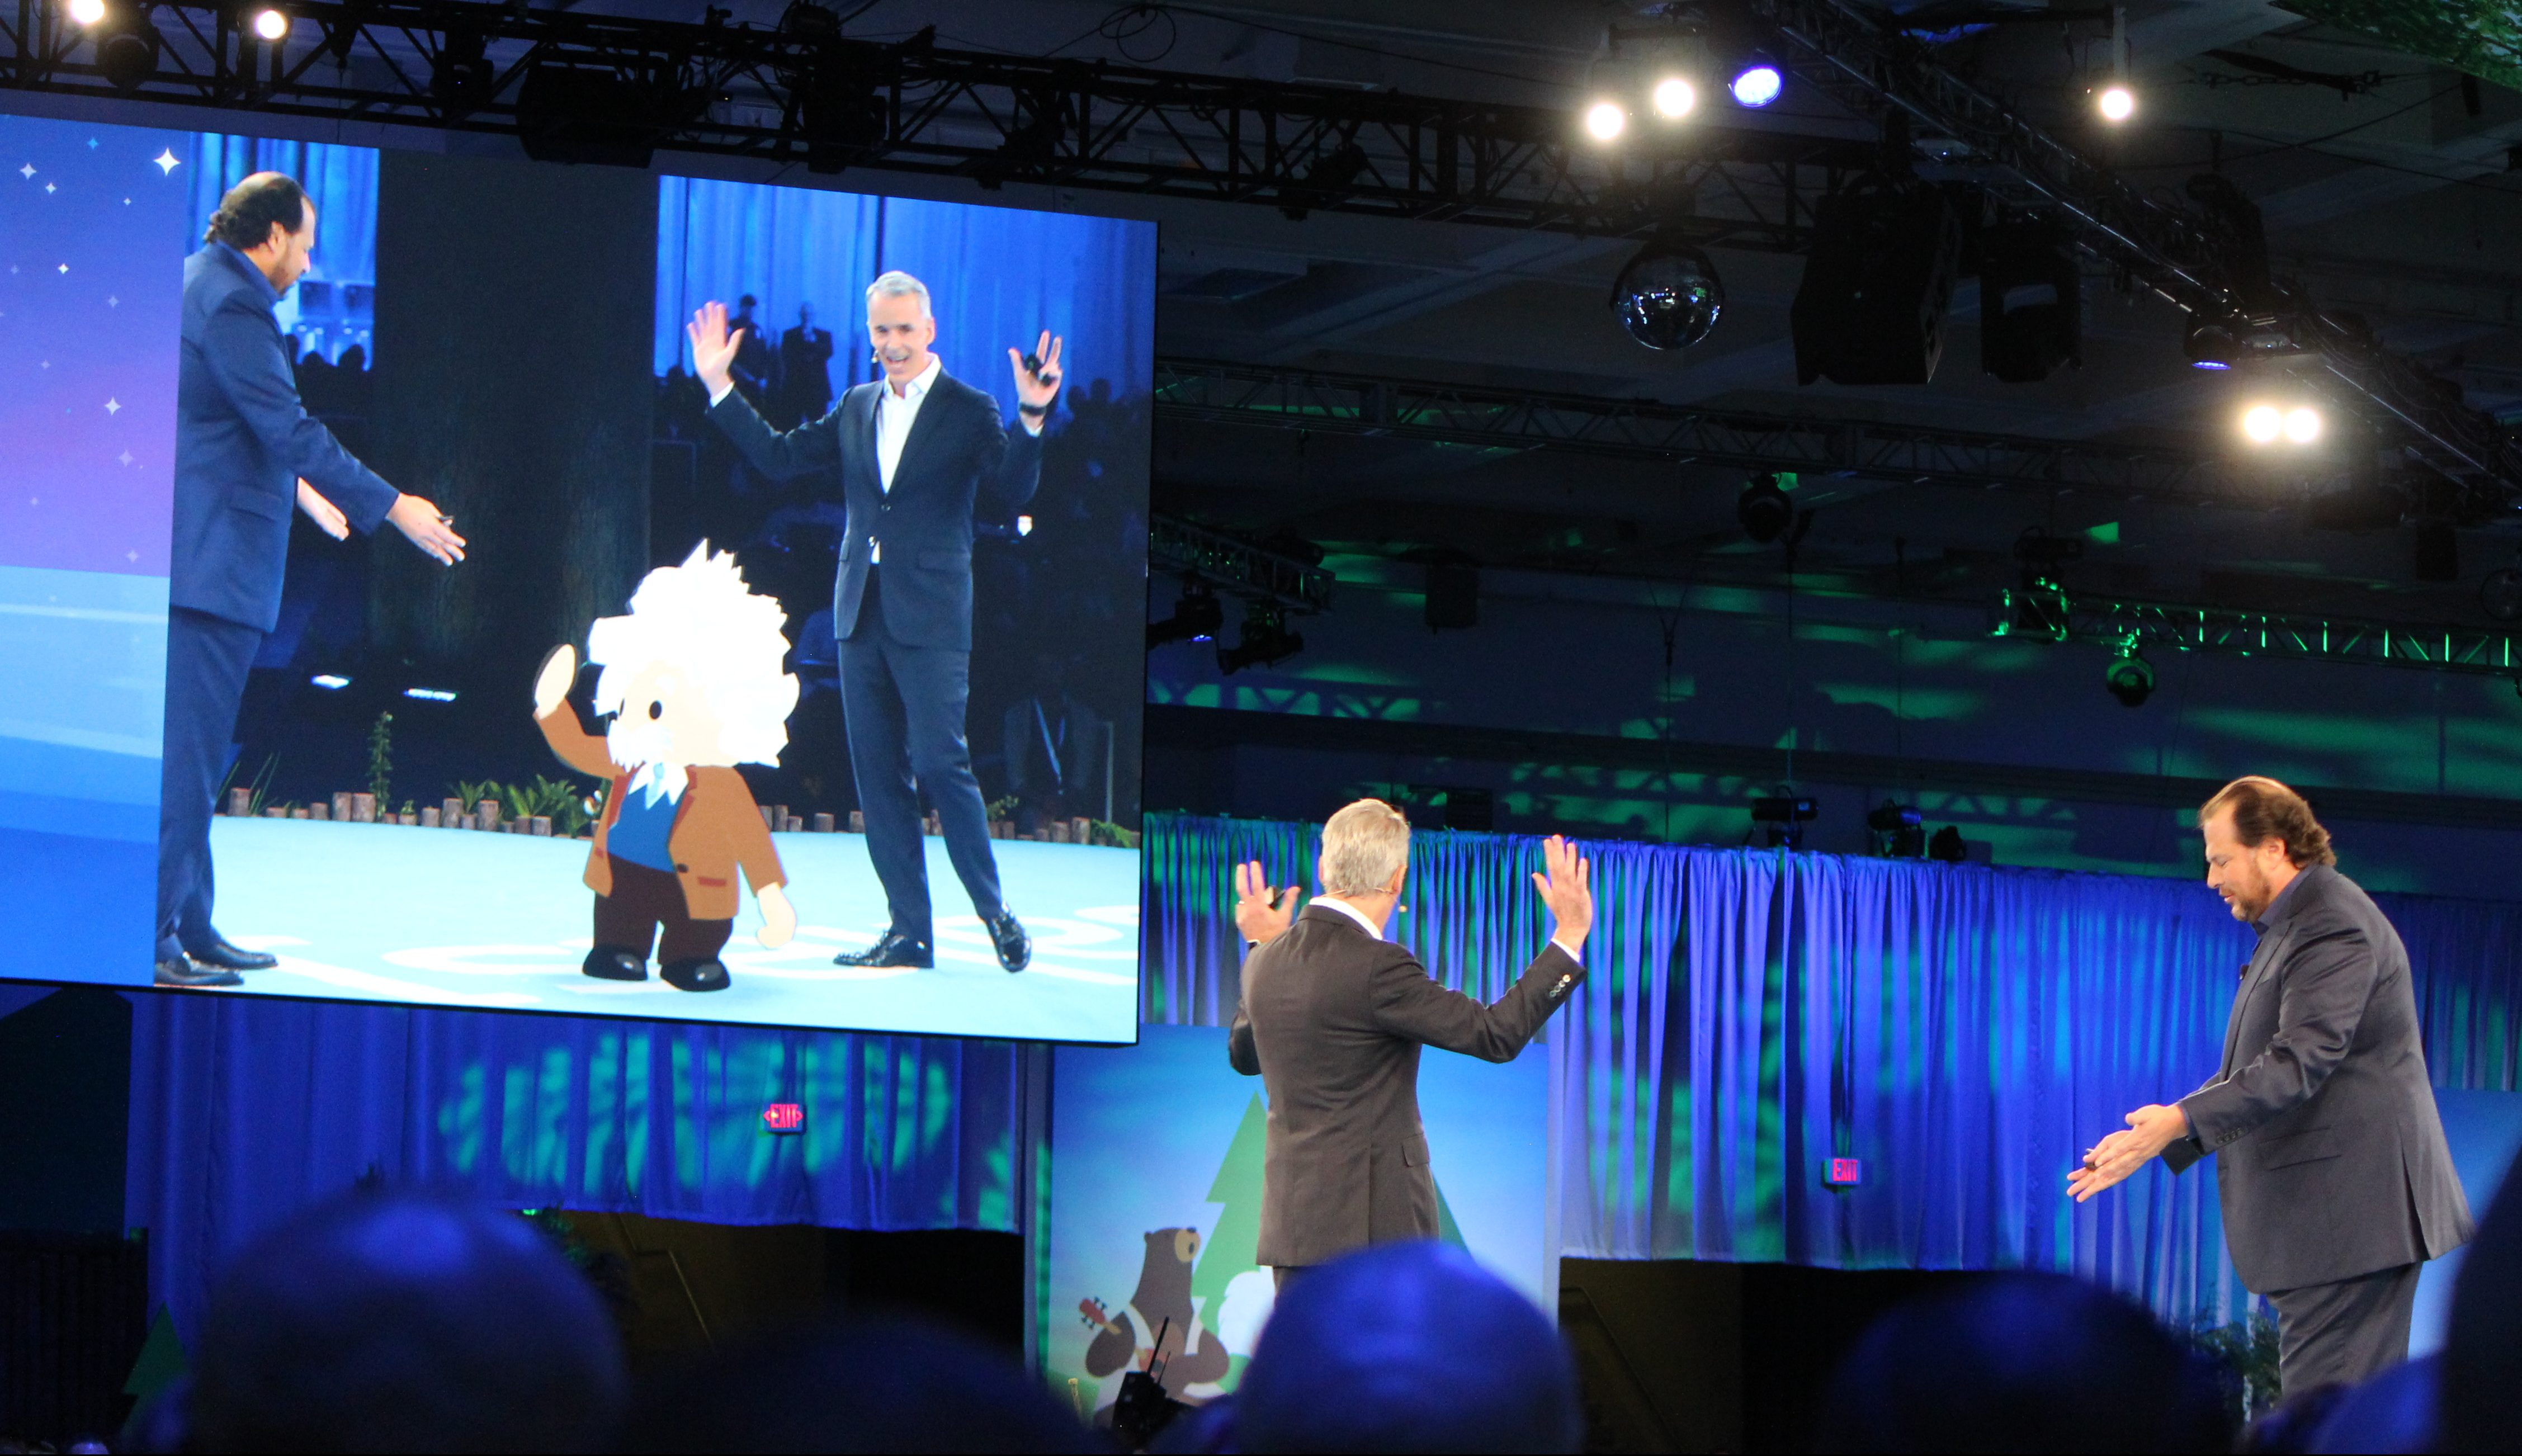 Salesforce co-founders Marc Benioff and Parker Harris interact with an AR Einstein on stage at Dreamforce.